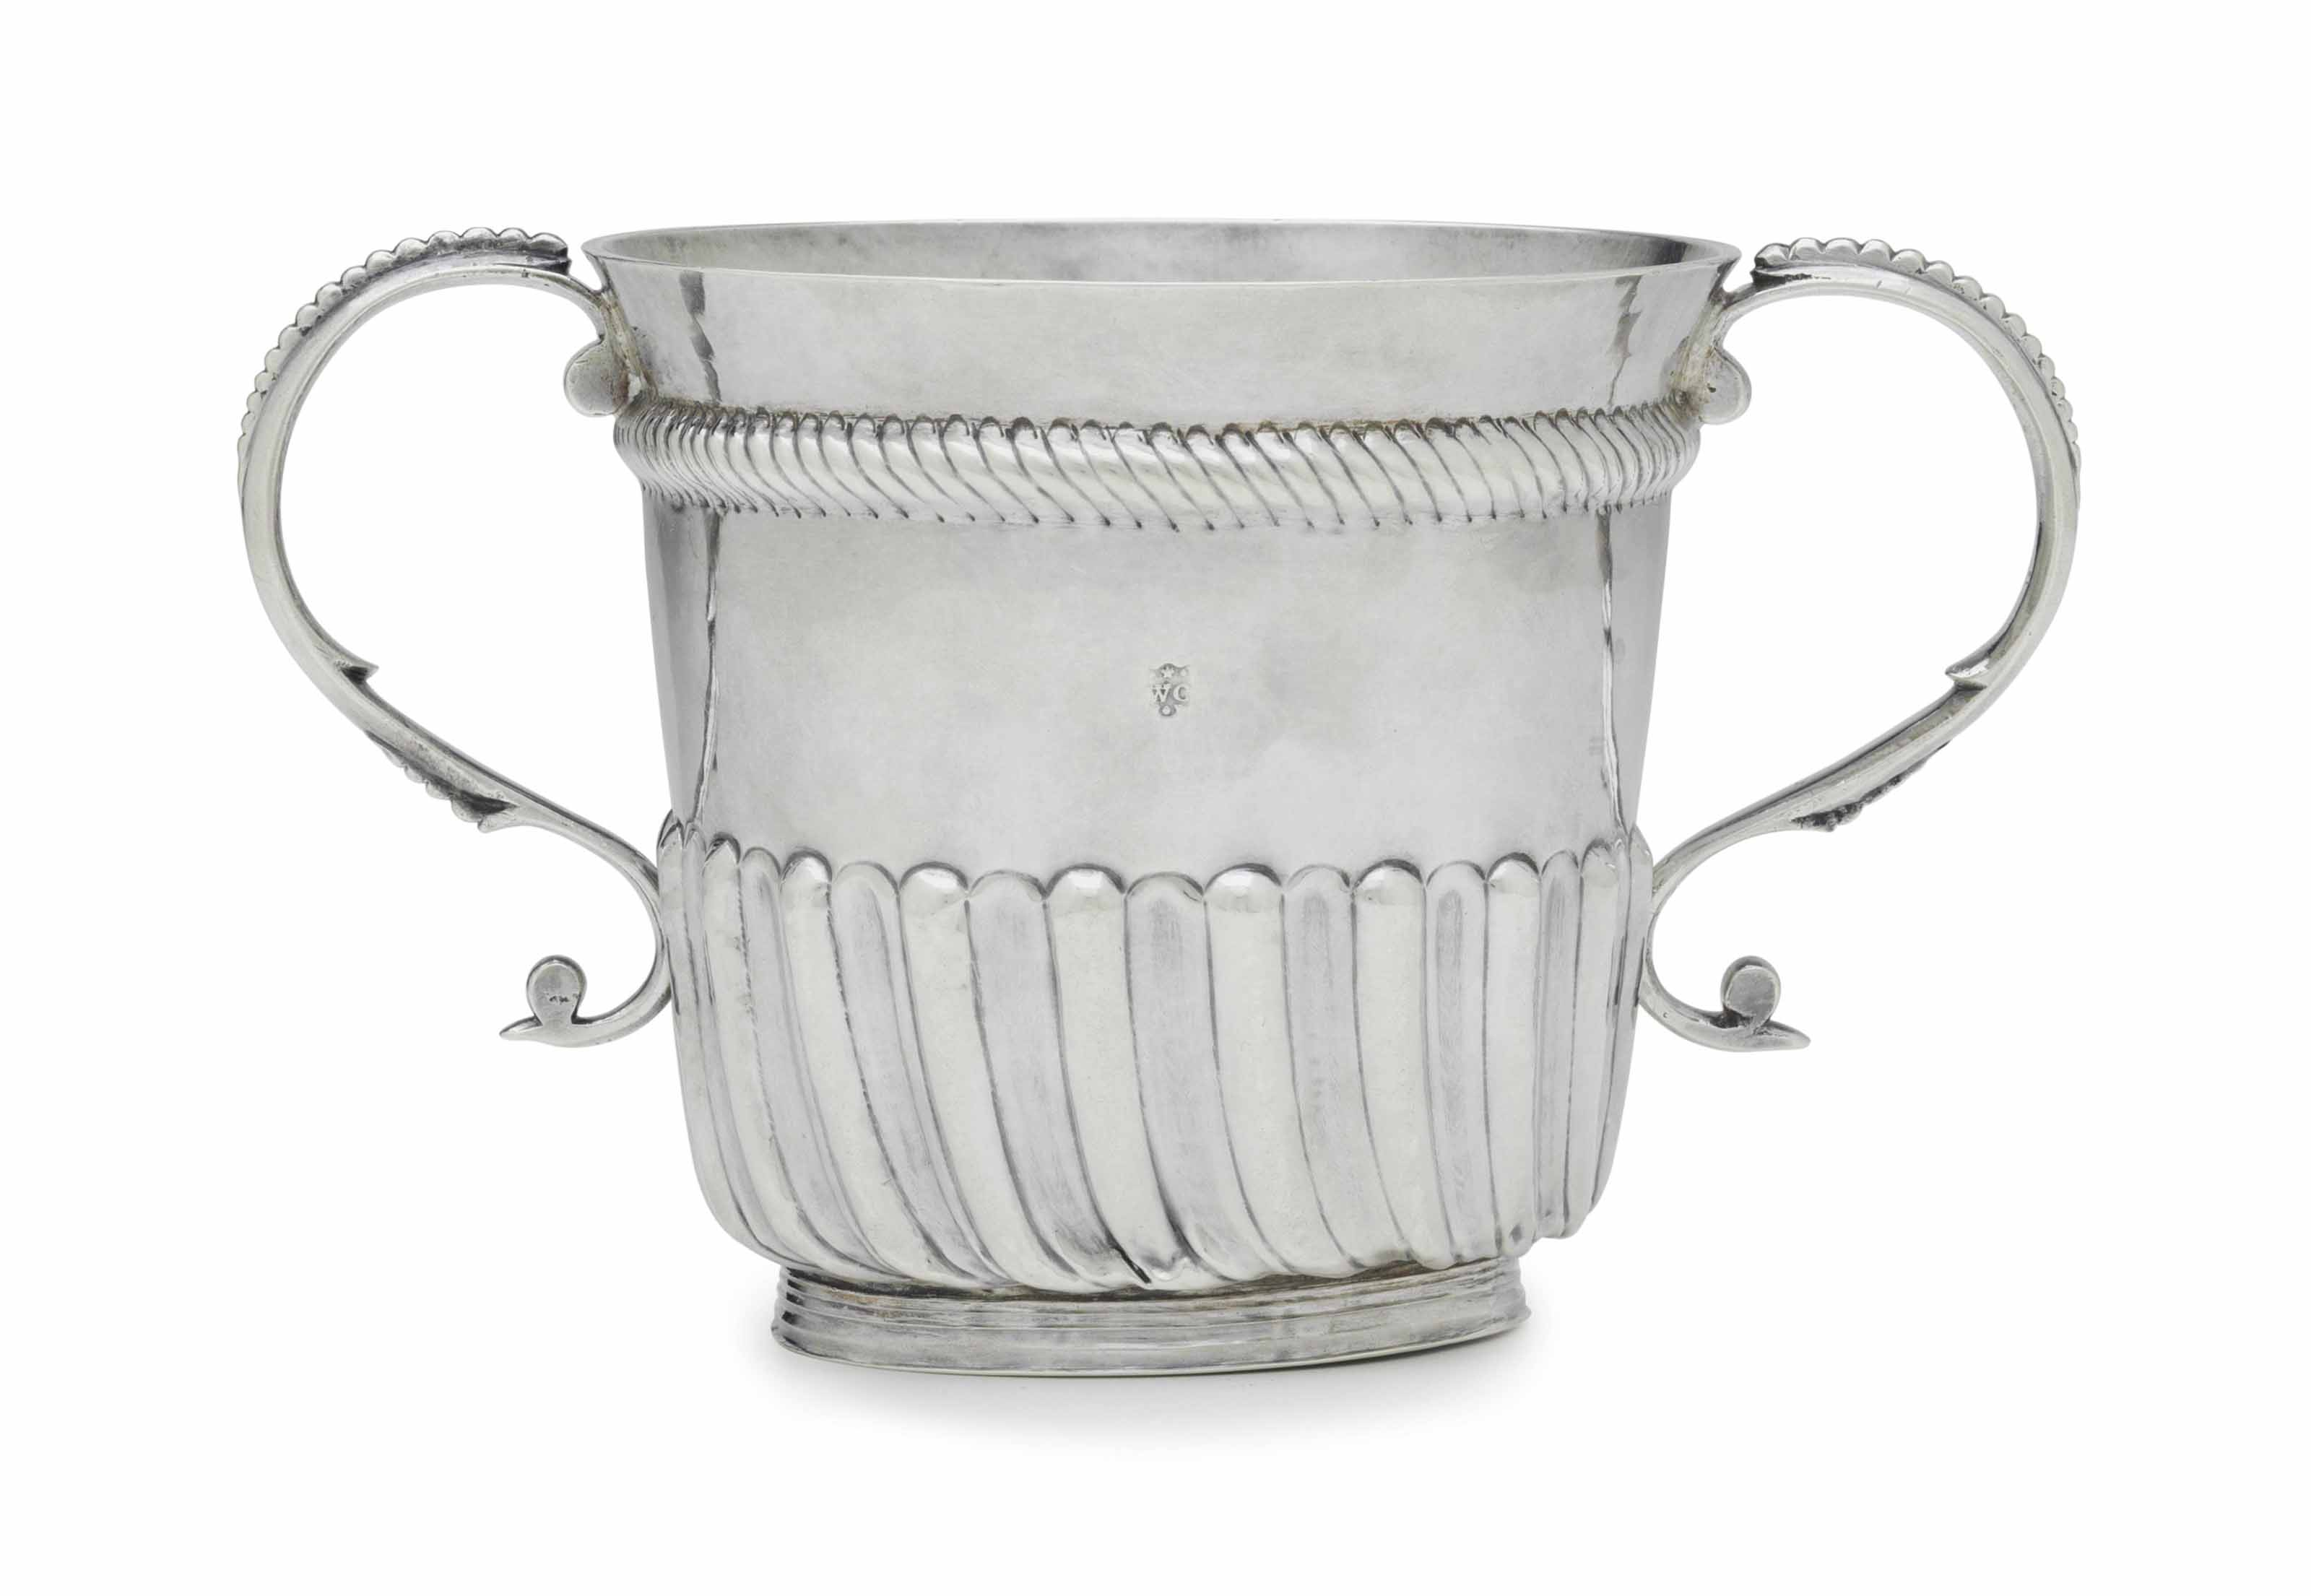 A SILVER TWO-HANDLED CUP FROM THE FARMINGTON CHURCH